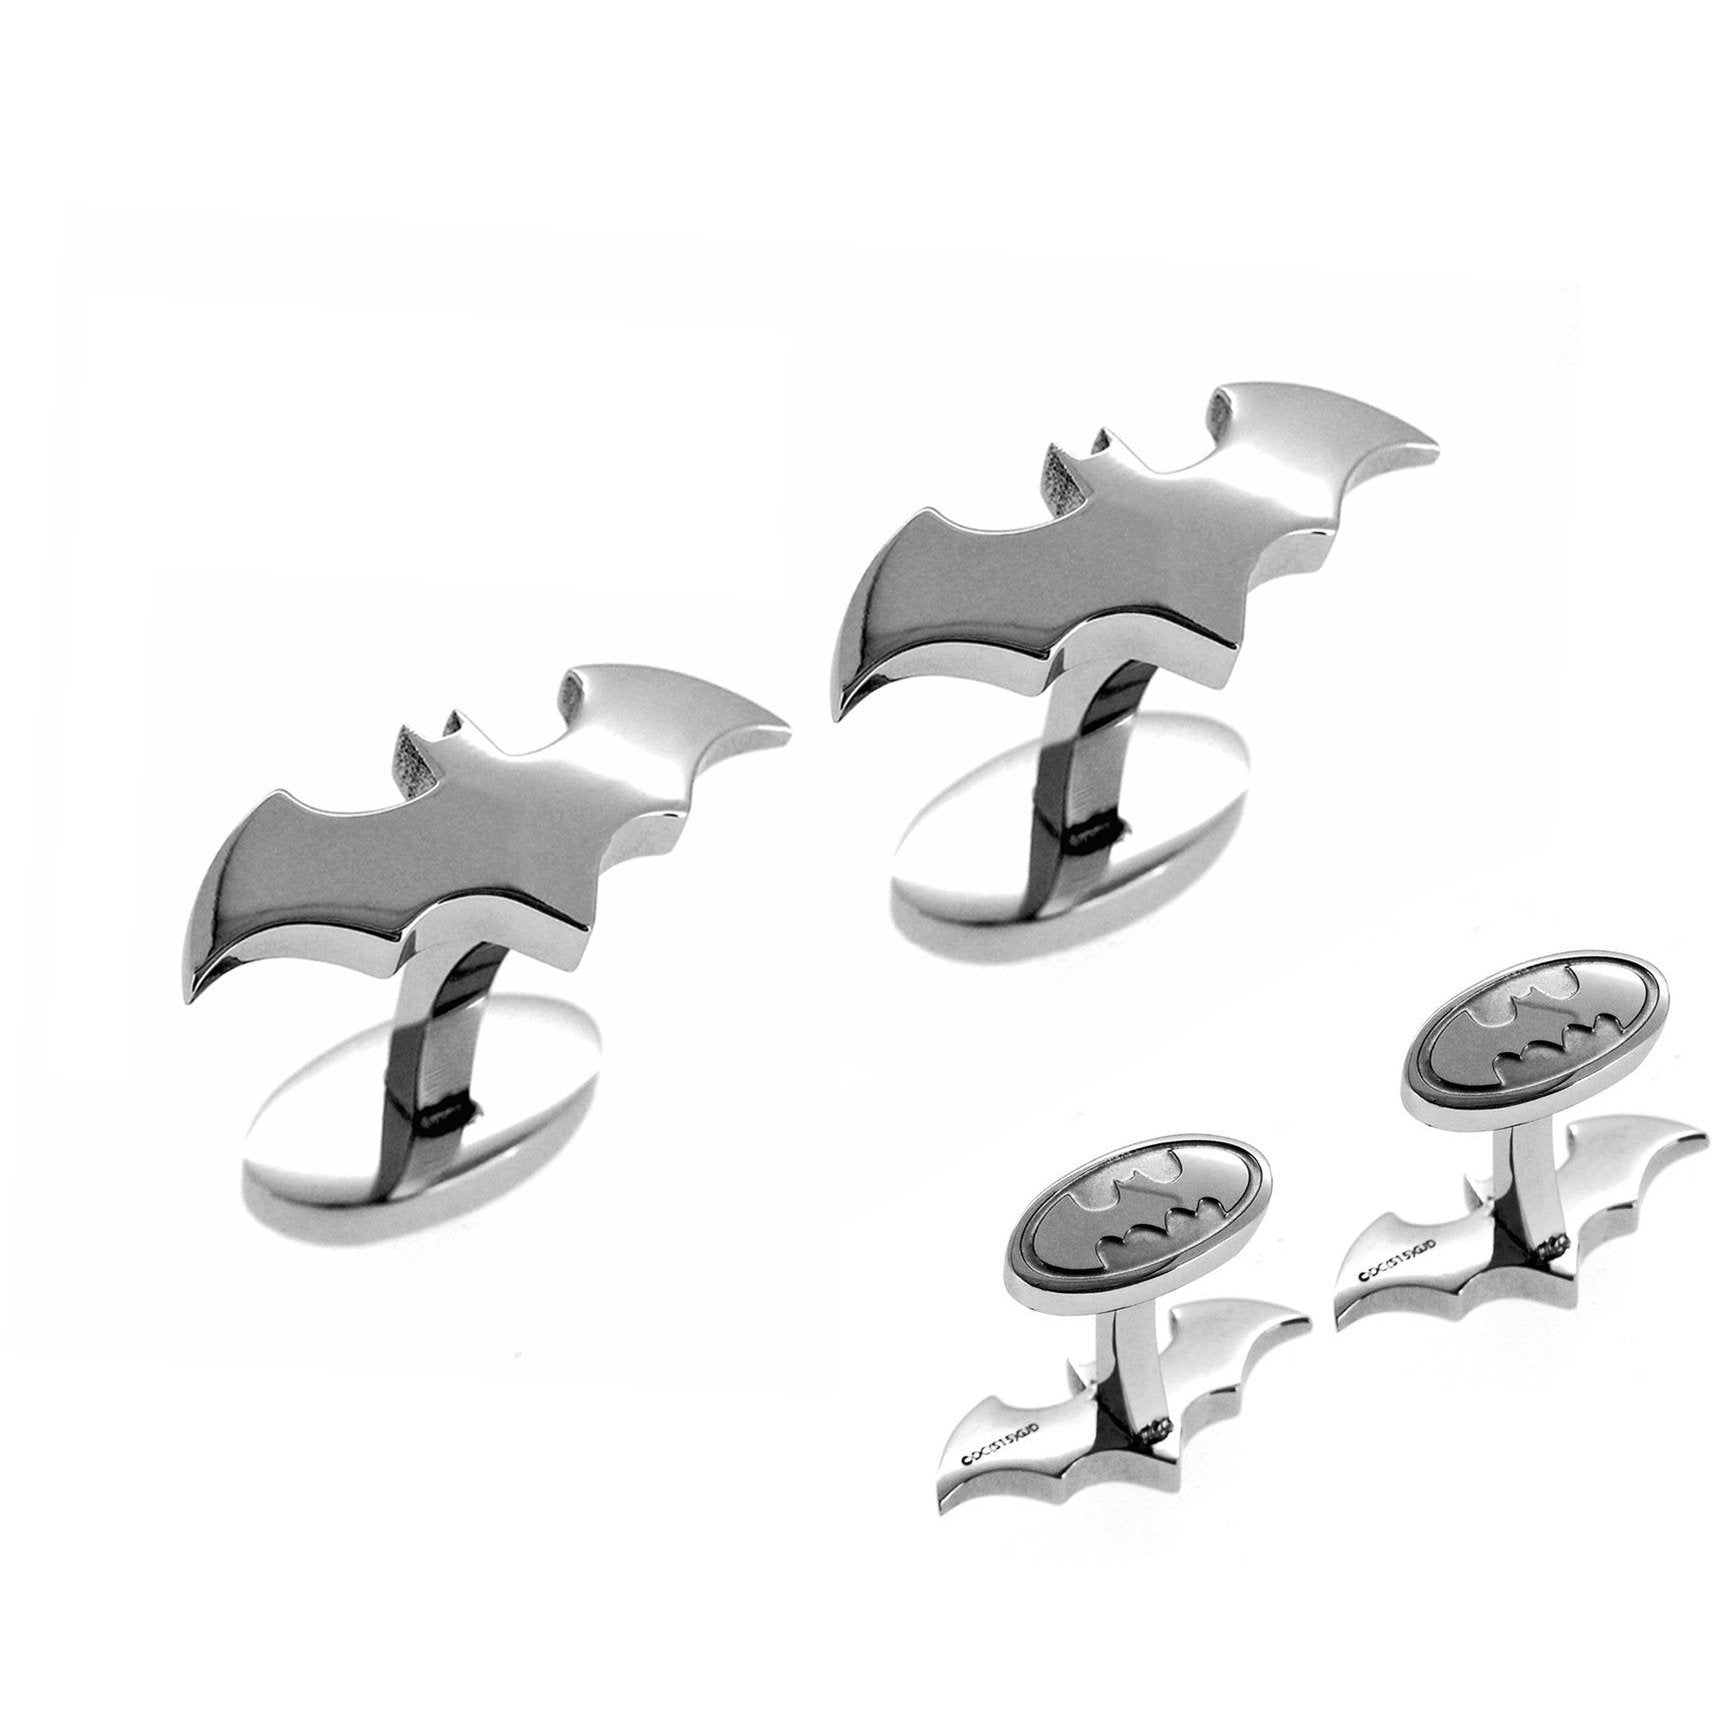 Batman Cufflinks Silver, Novelty Cufflinks, Cuffed.com.au, CL5802, $65.00